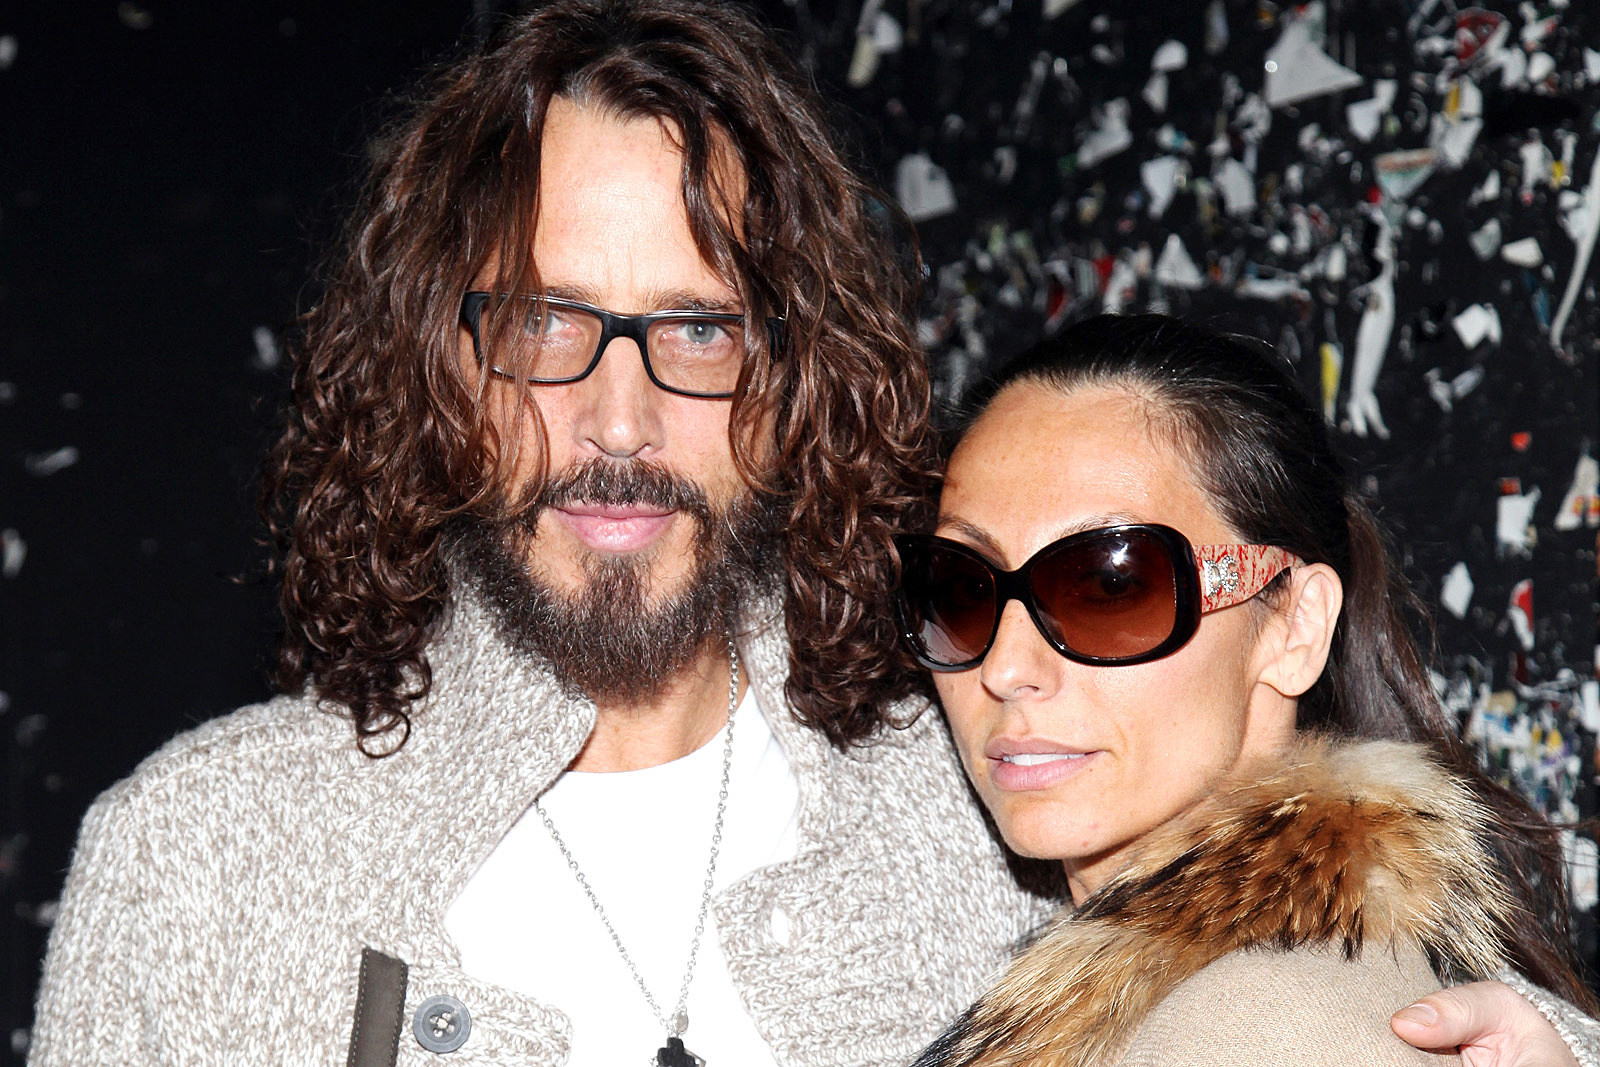 Chris Cornell's Widow Says Death Probe Led to 'Vile' Conspiracies | The Rock of Rochester